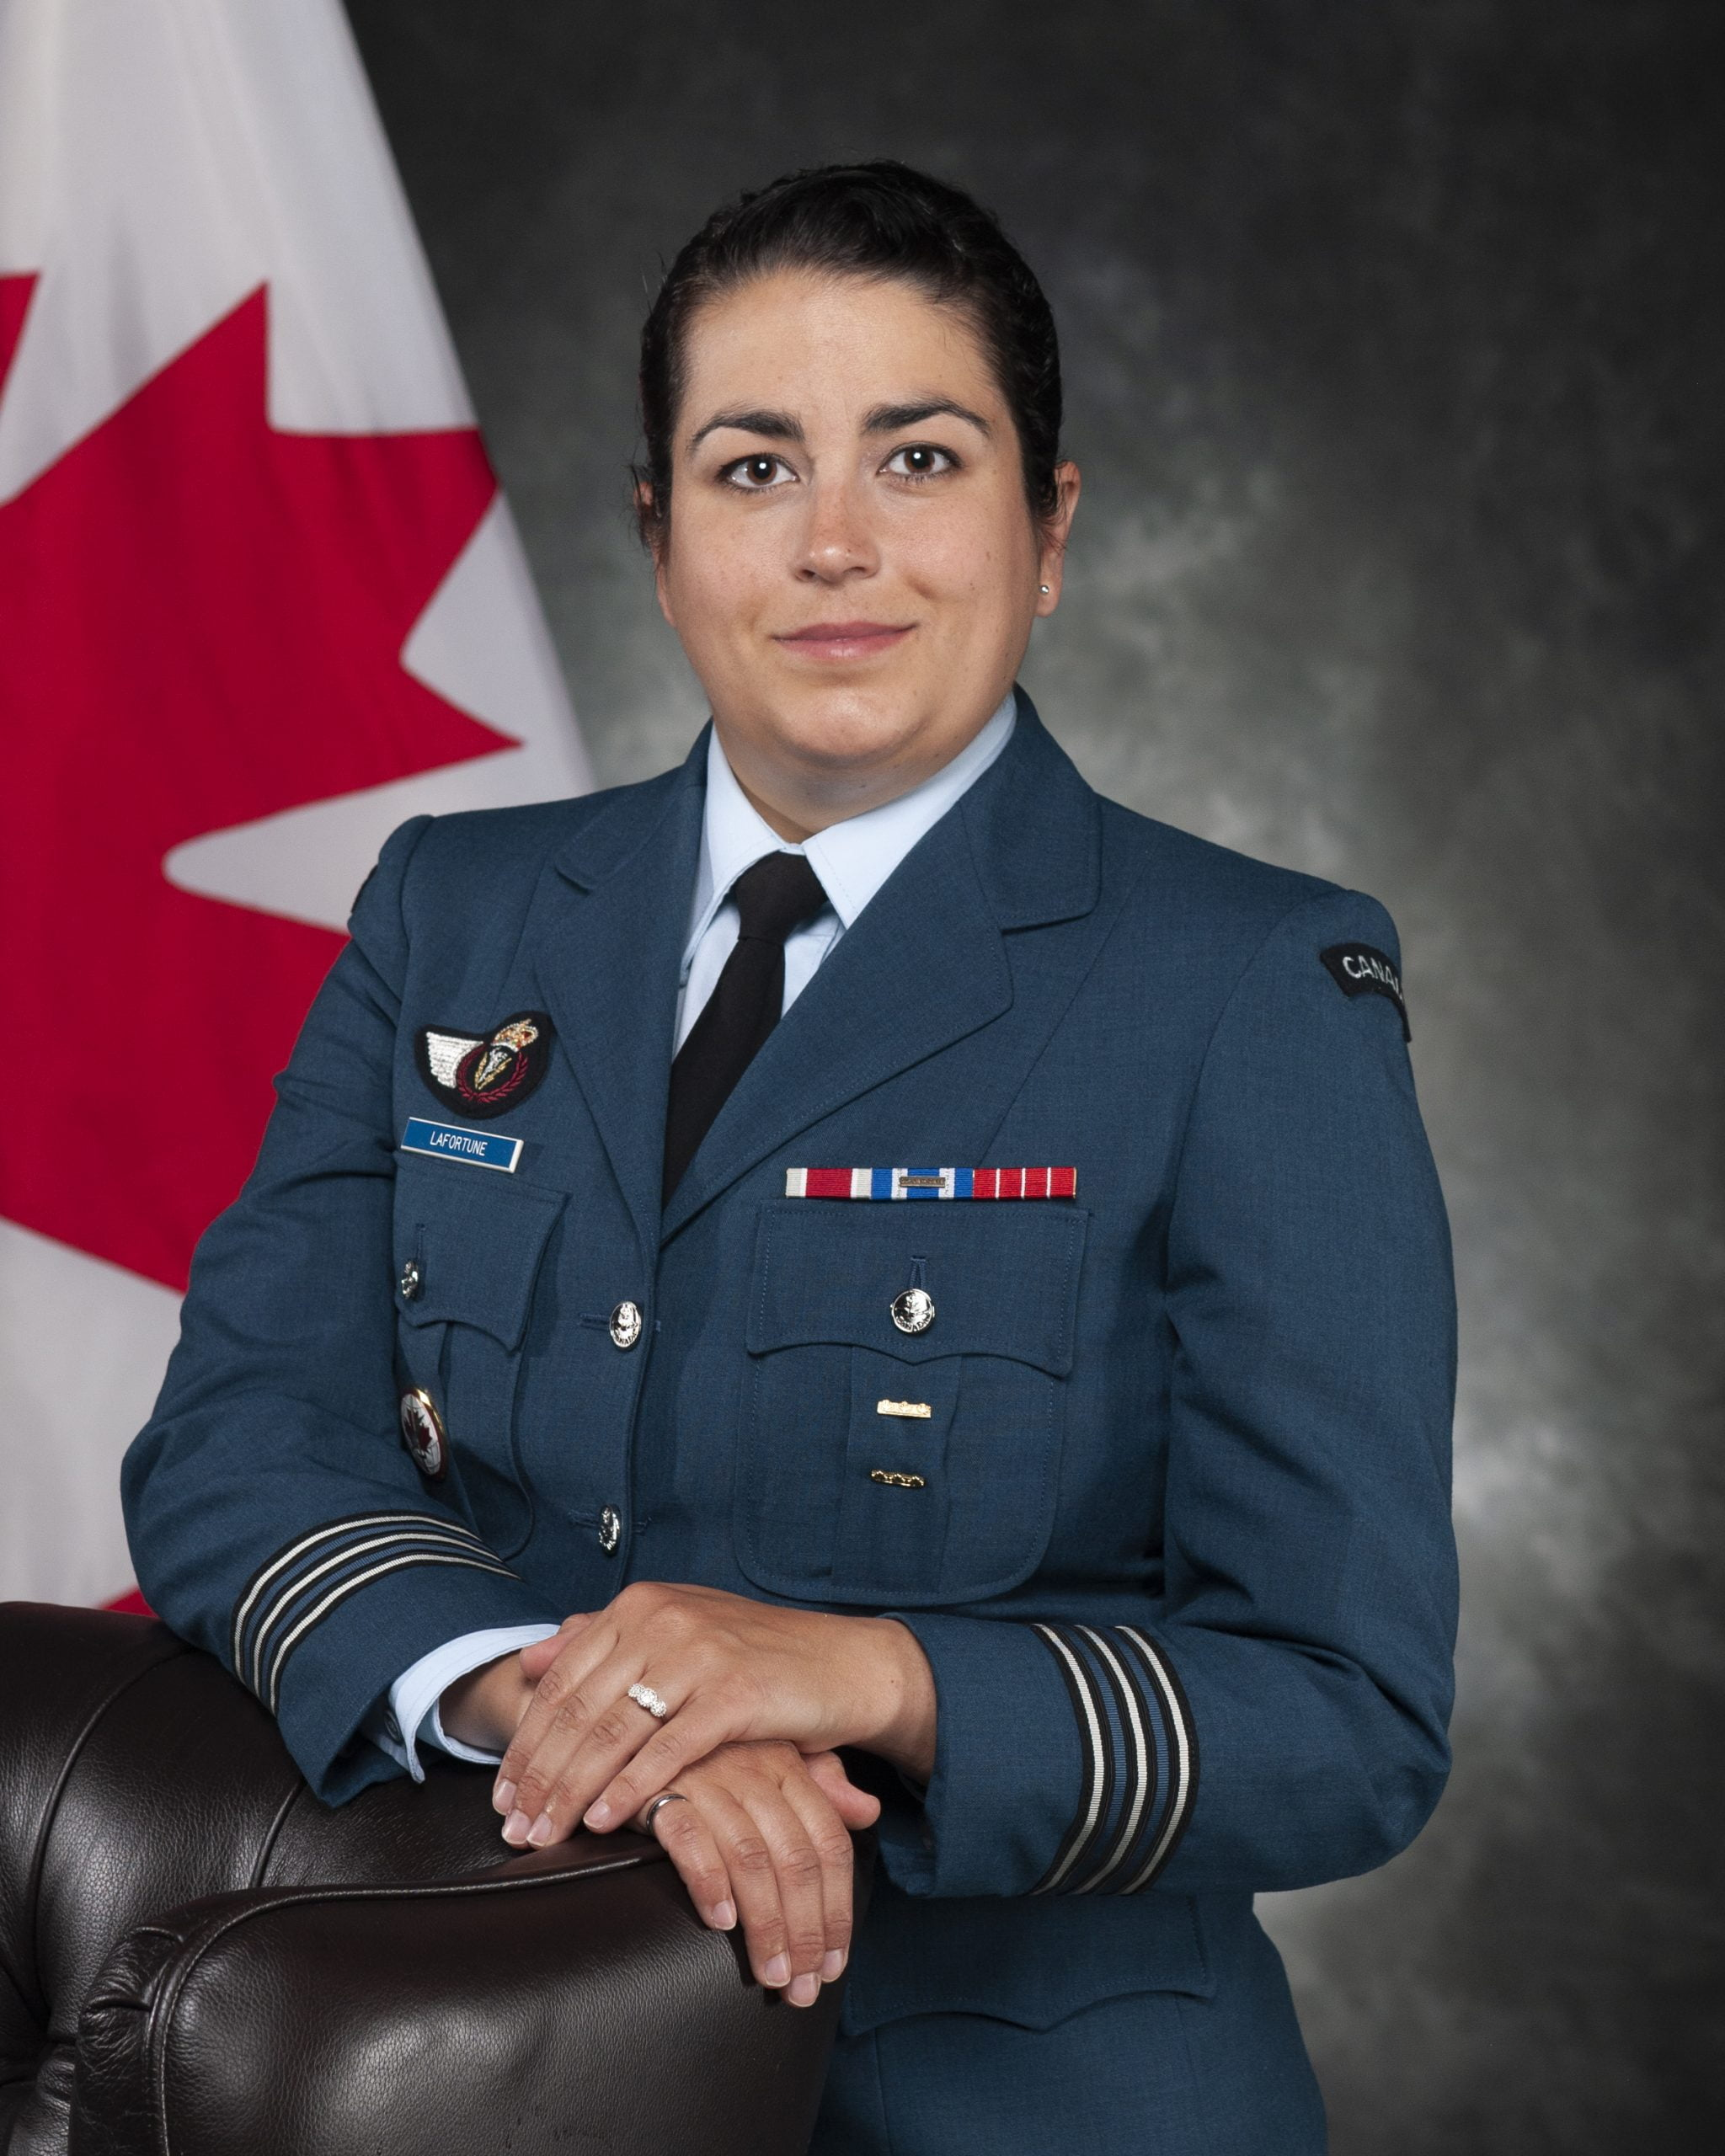 LCol Marilyne Lafortune, CD - CO CFNOC